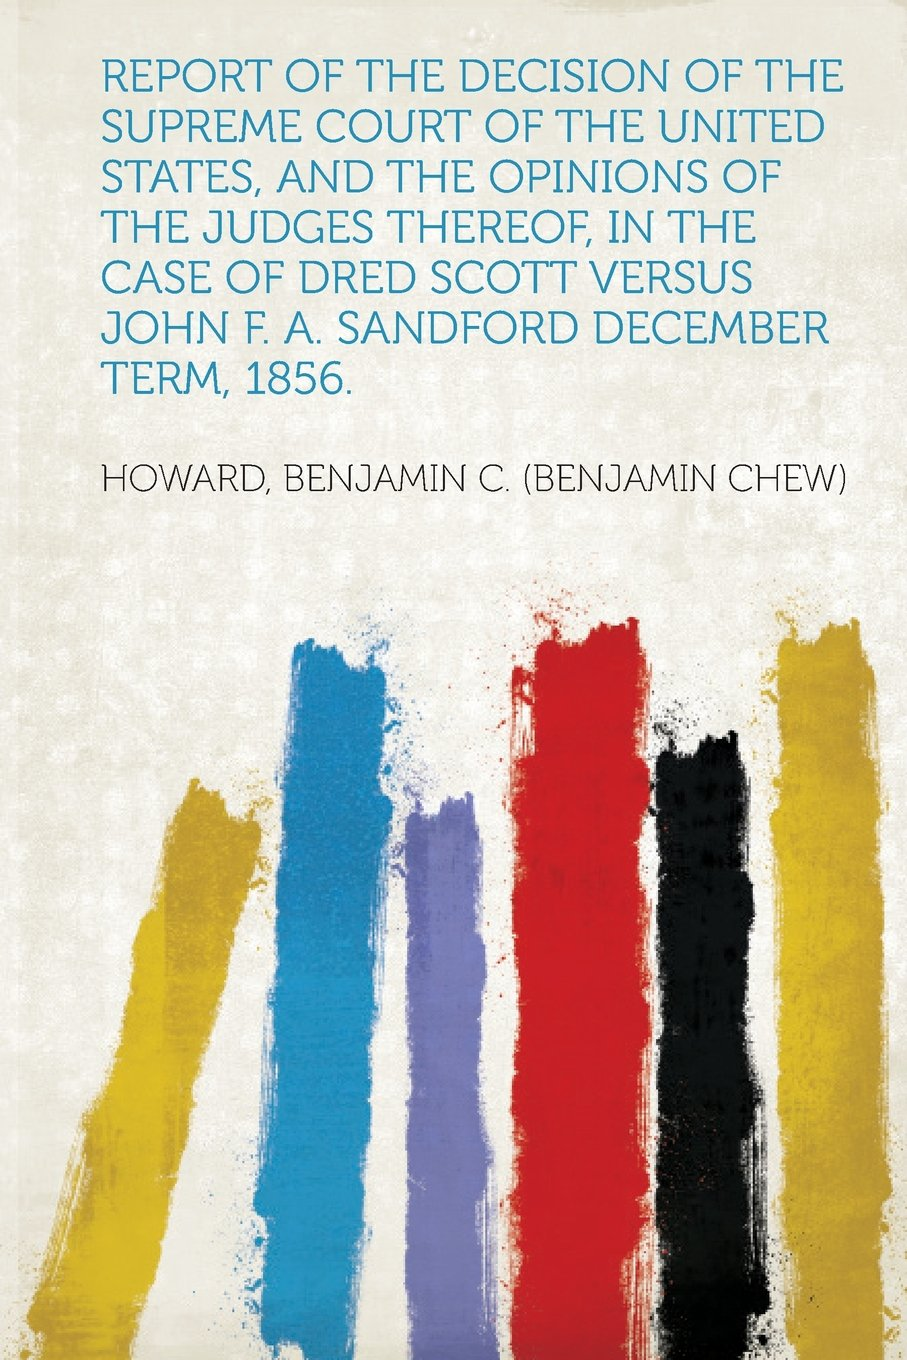 Read Online Report of the Decision of the Supreme Court of the United States, and the Opinions of the Judges Thereof, in the Case of Dred Scott versus John F. A. Sandford December Term, 1856. pdf